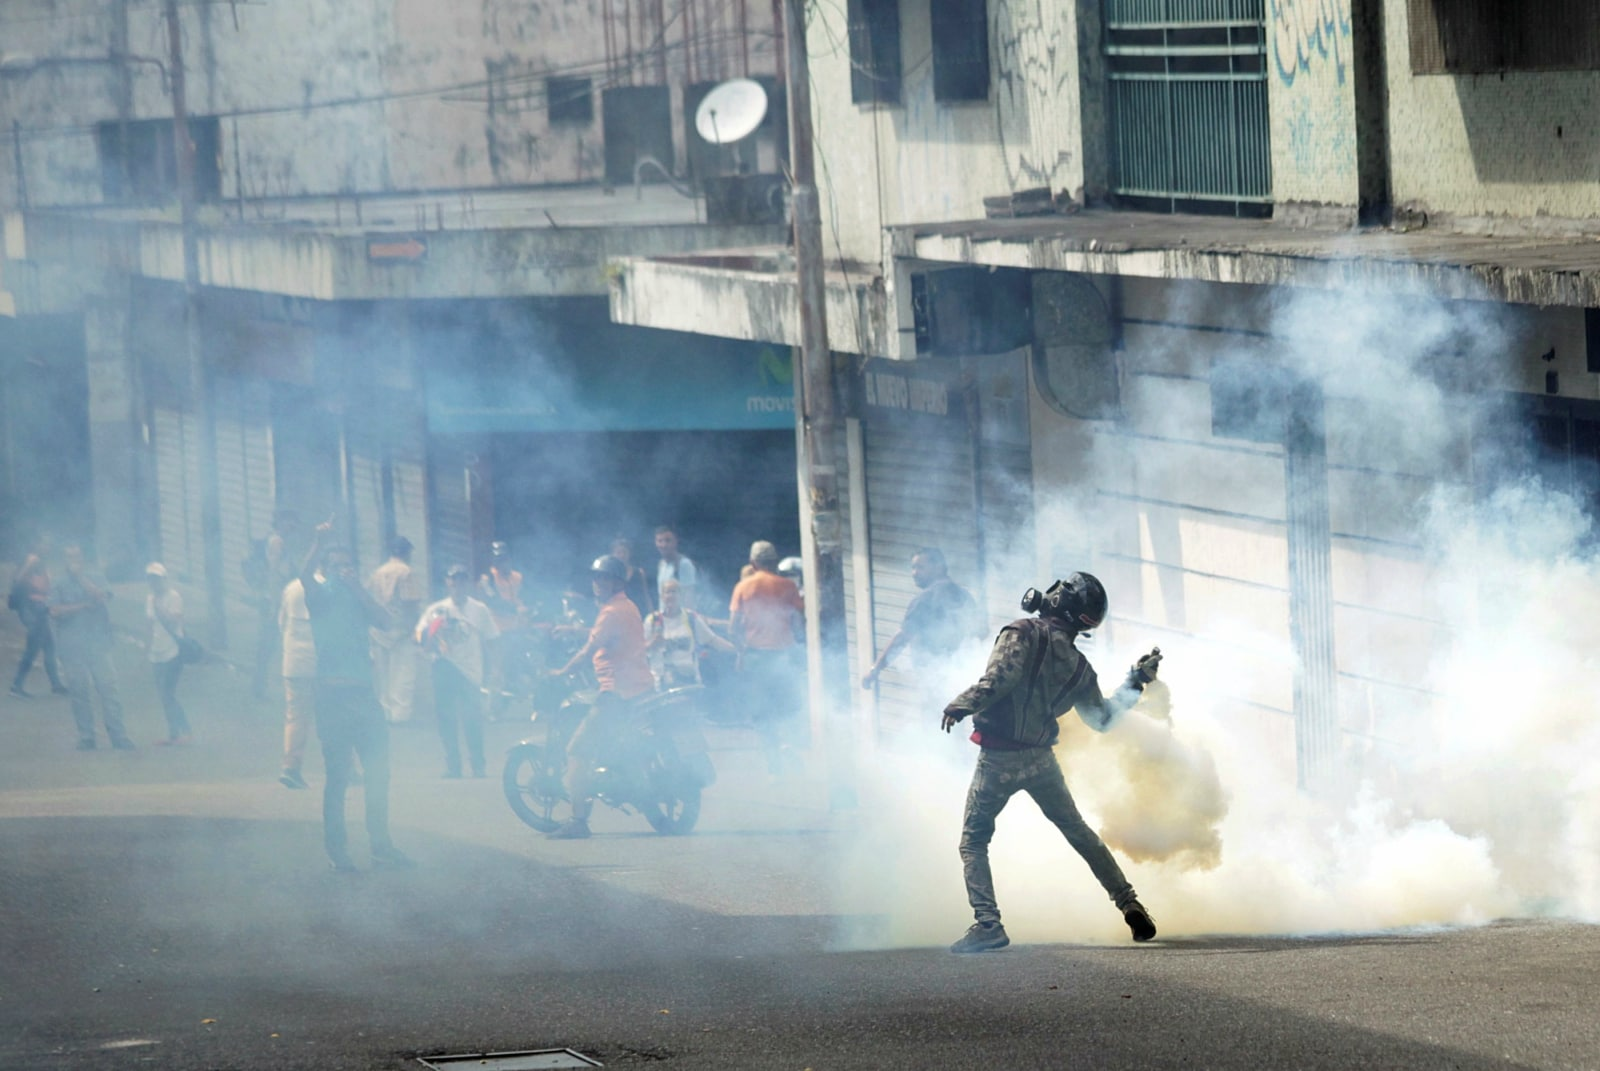 A demonstrator throws back a gas canister while clashing with security forces during a rally against Venezuelan President Nicolas Maduro's government and to commemorate the 61st anniversary of the end of the dictatorship of Marcos Perez Jimenez in Tachira, Venezuela January 23, 2019. REUTERS/Carlos Eduardo Ramirez